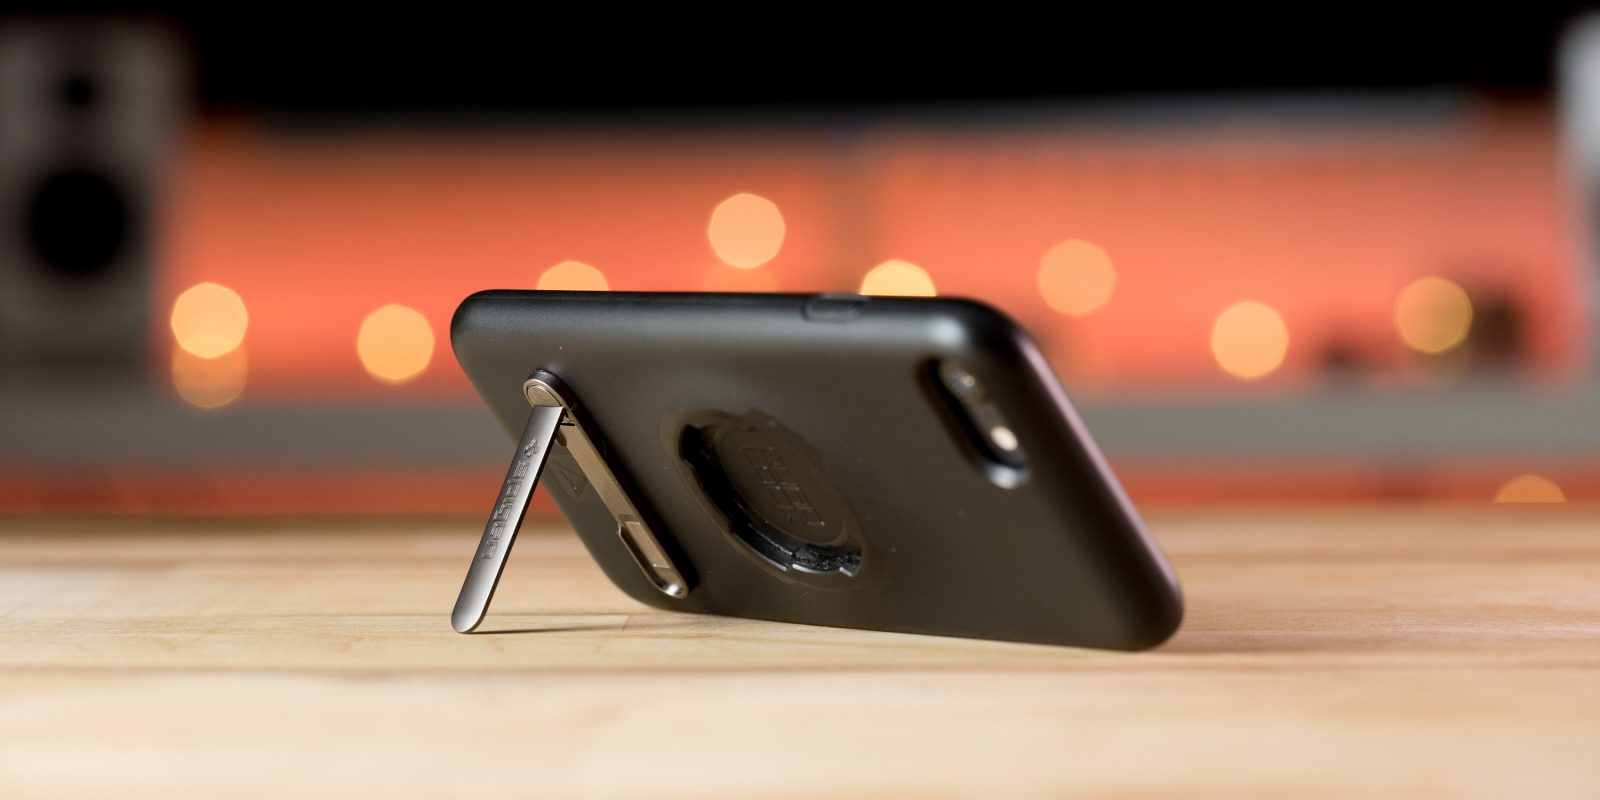 Spigen Universal Kickstand Review: Must-have $10 iPhone/Android accessory? [Video]